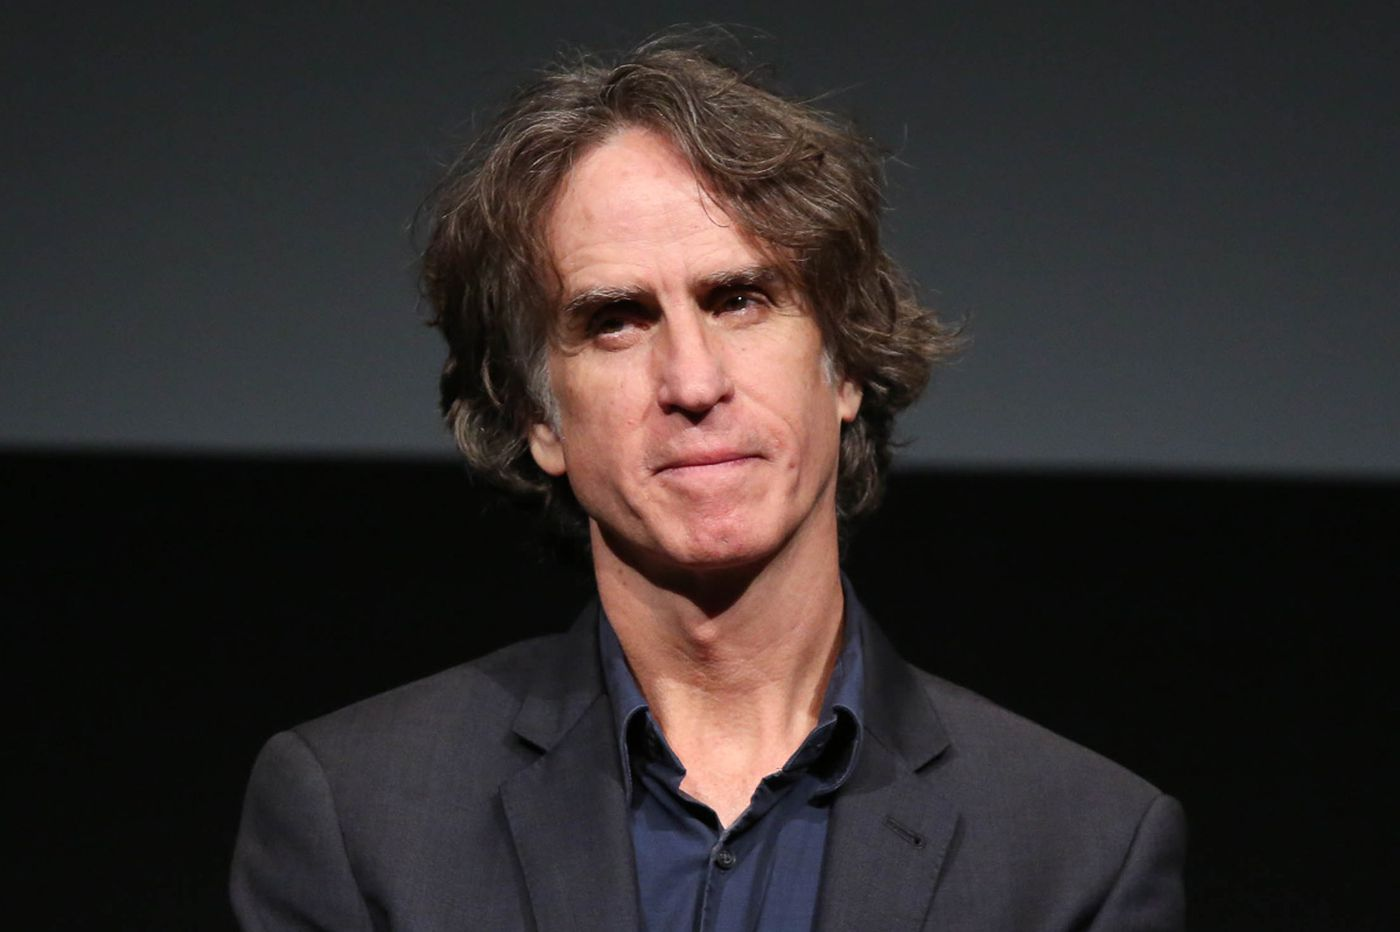 'Trumbo' director Jay Roach goes from 'Meet the Parents' to meet the propagandists